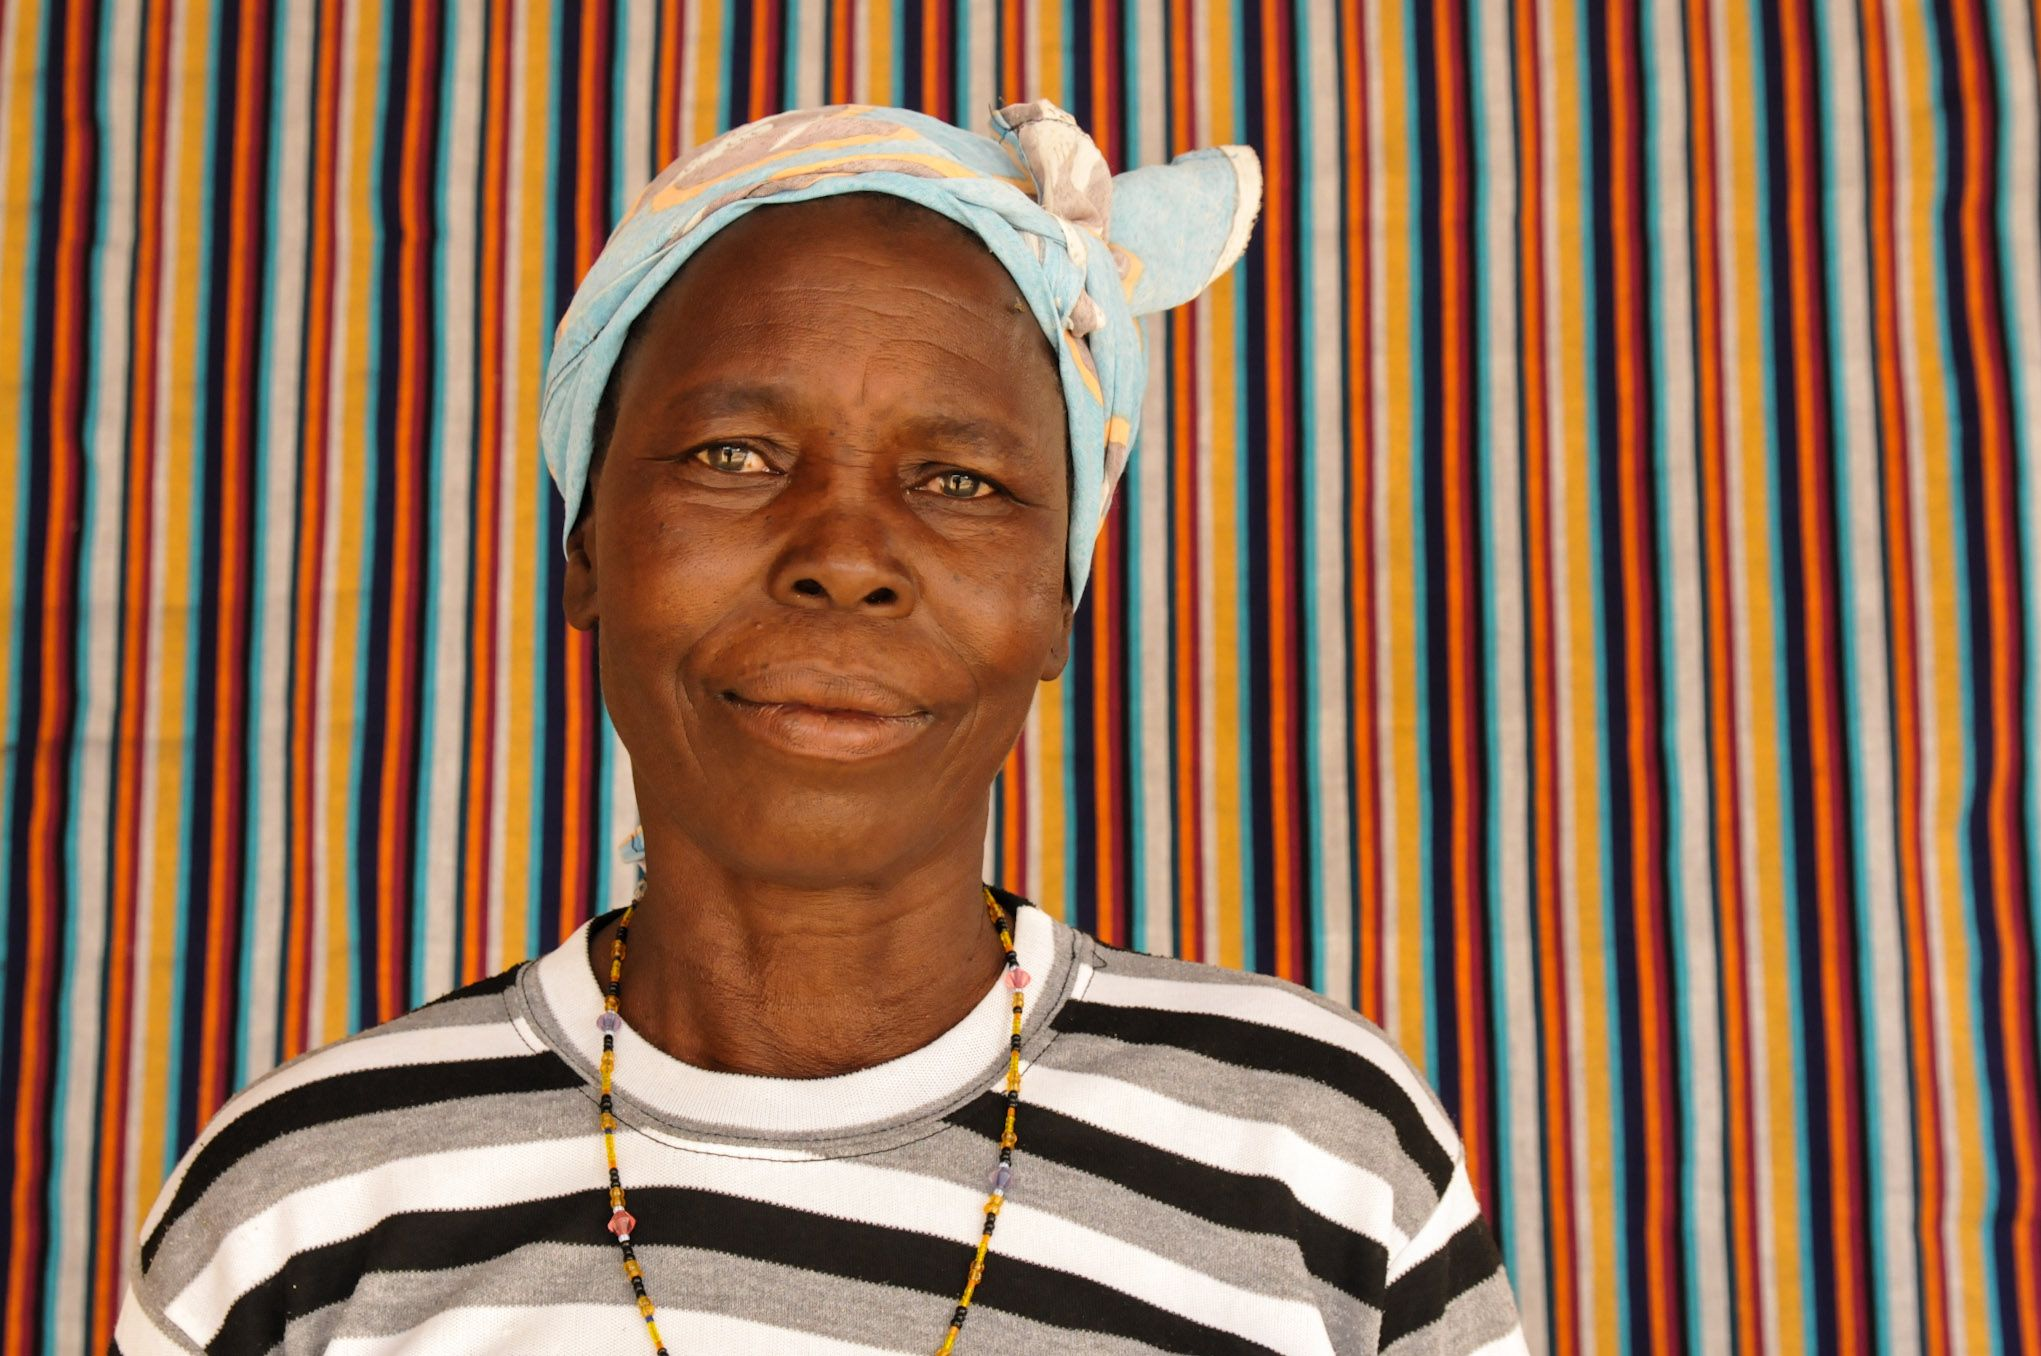 """""""I began working for the cooperative in 2007 as a dyer, and now I am a weaver. This job allows me to pay school fees for my seven children."""" says Rosalie, an artisan from Burkina Faso  © ITC Ethical Fashion Initiative & Anne Mimault"""